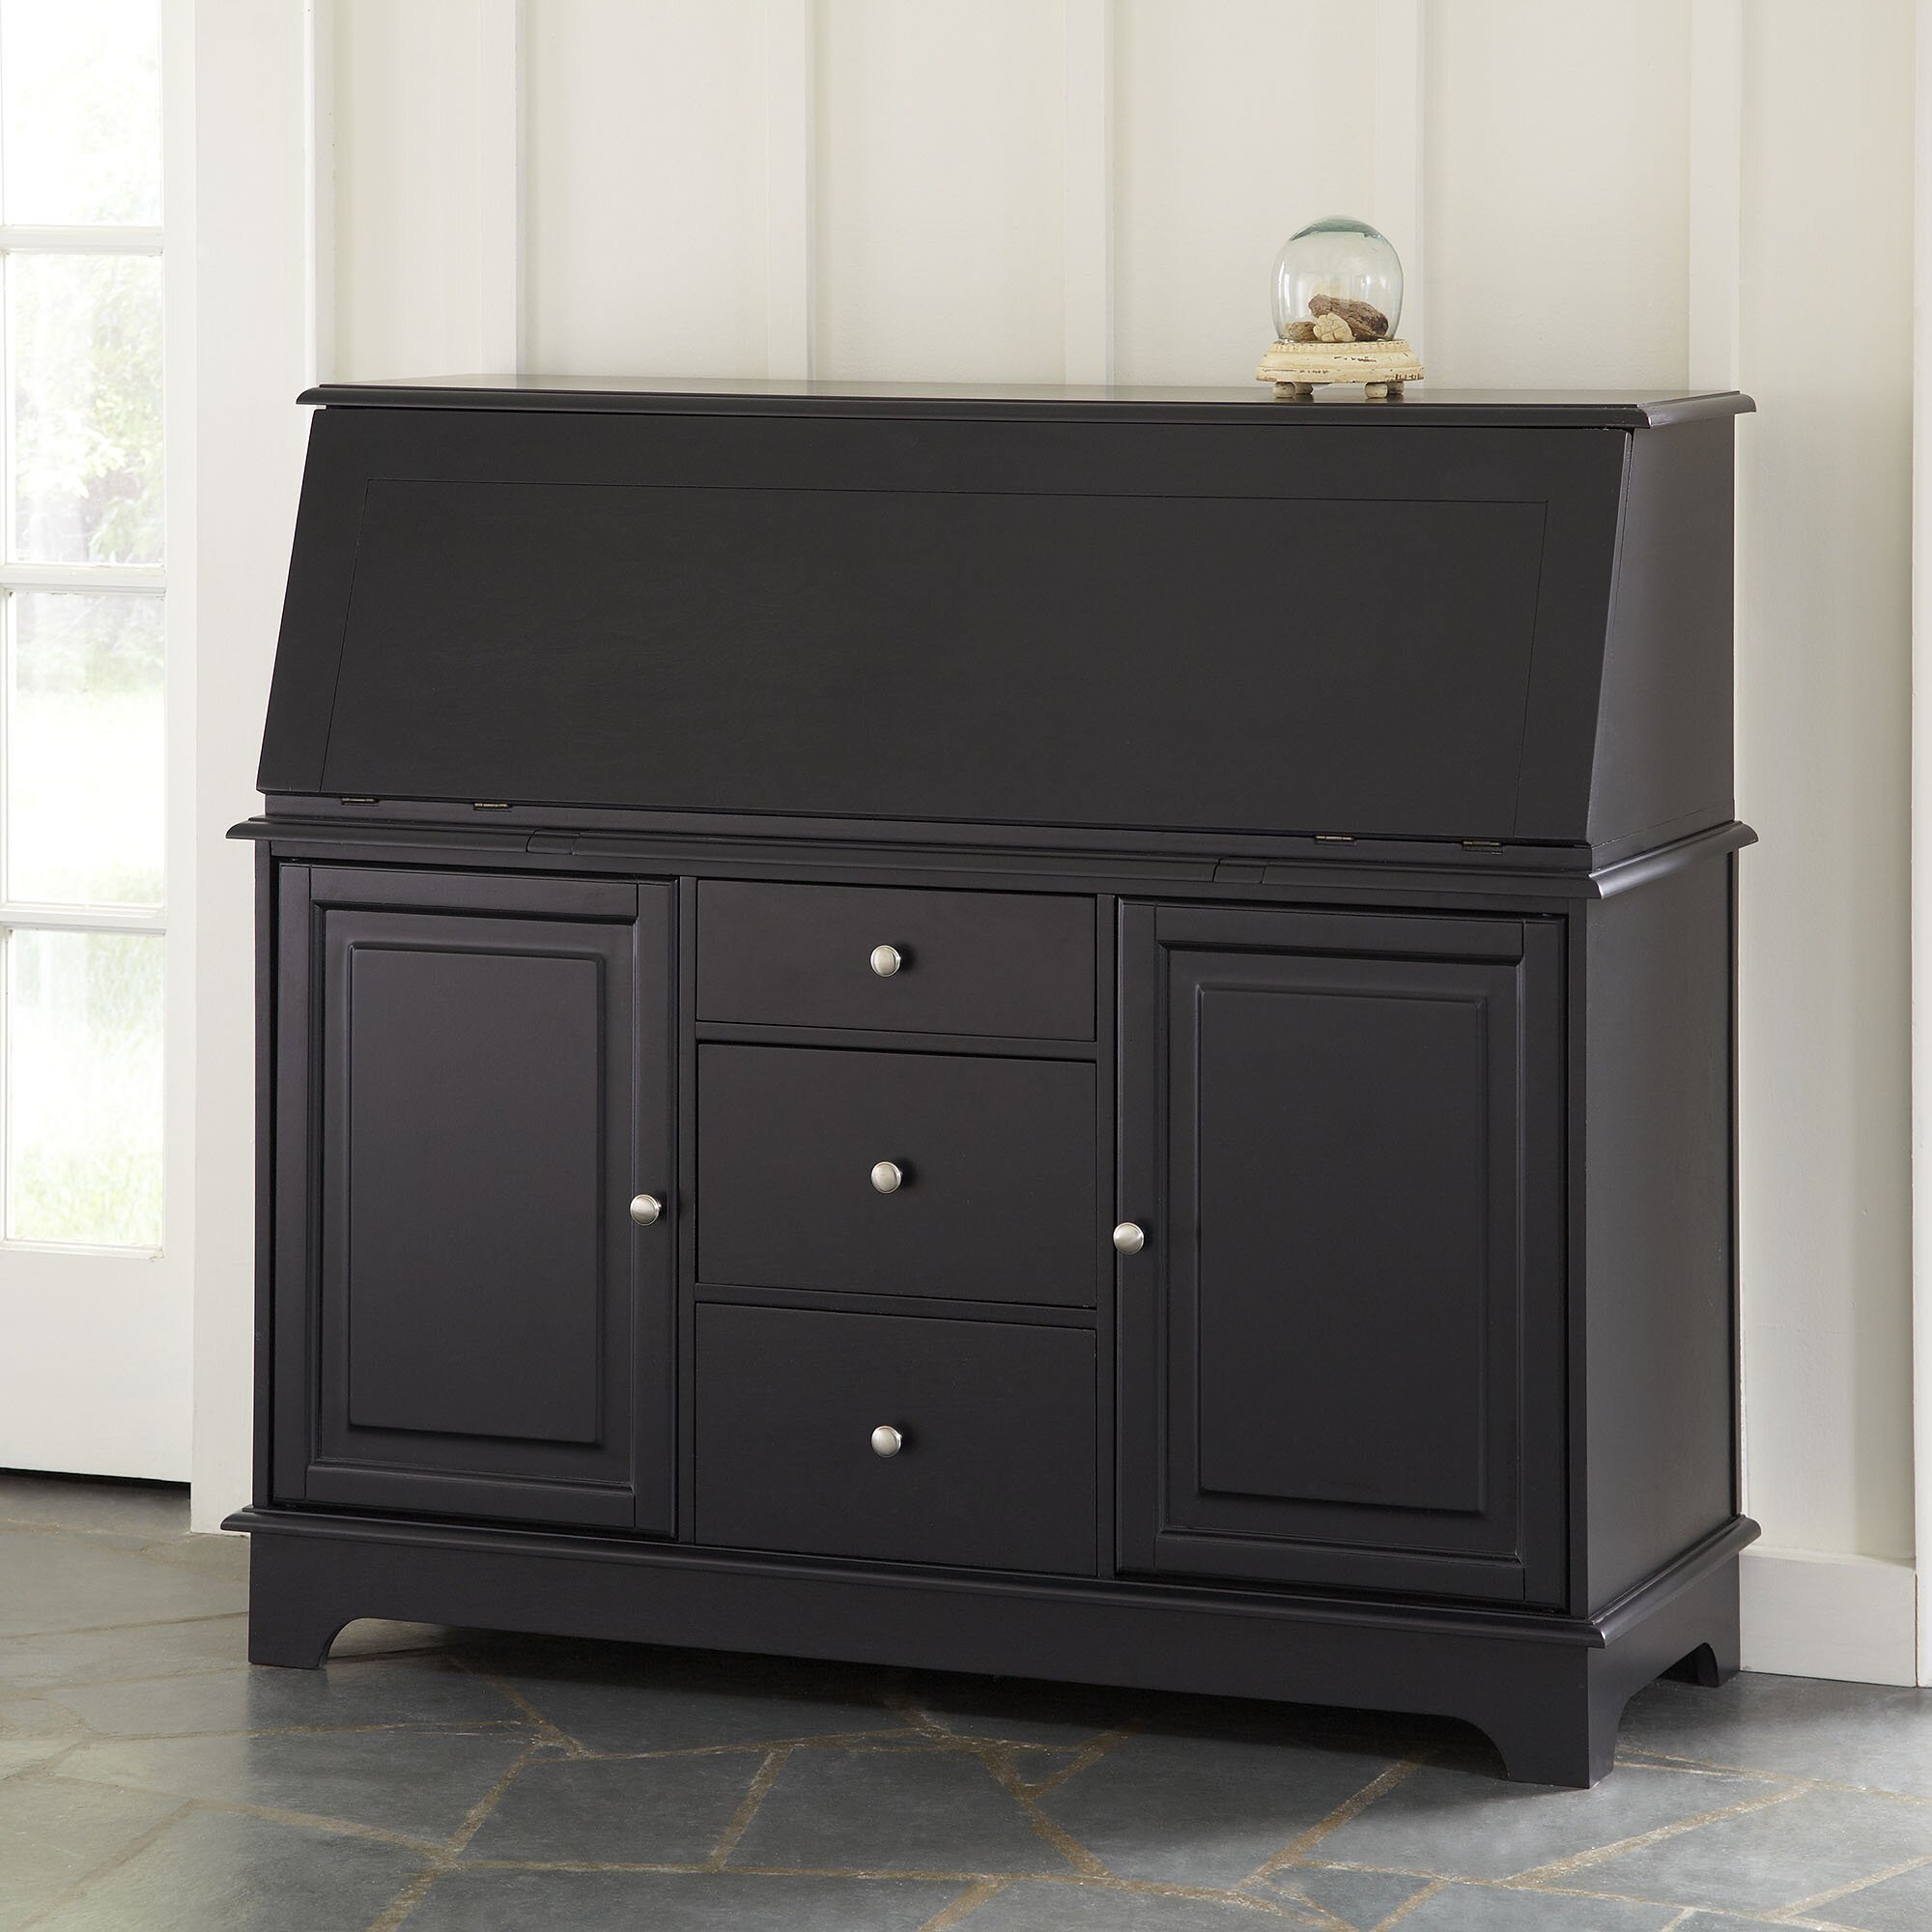 #746C57 Darby Home Co Reddick Secretary Desk & Reviews Wayfair with 2000x2000 px of Highly Rated Wayfair Secretary Desk 20002000 picture/photo @ avoidforclosure.info